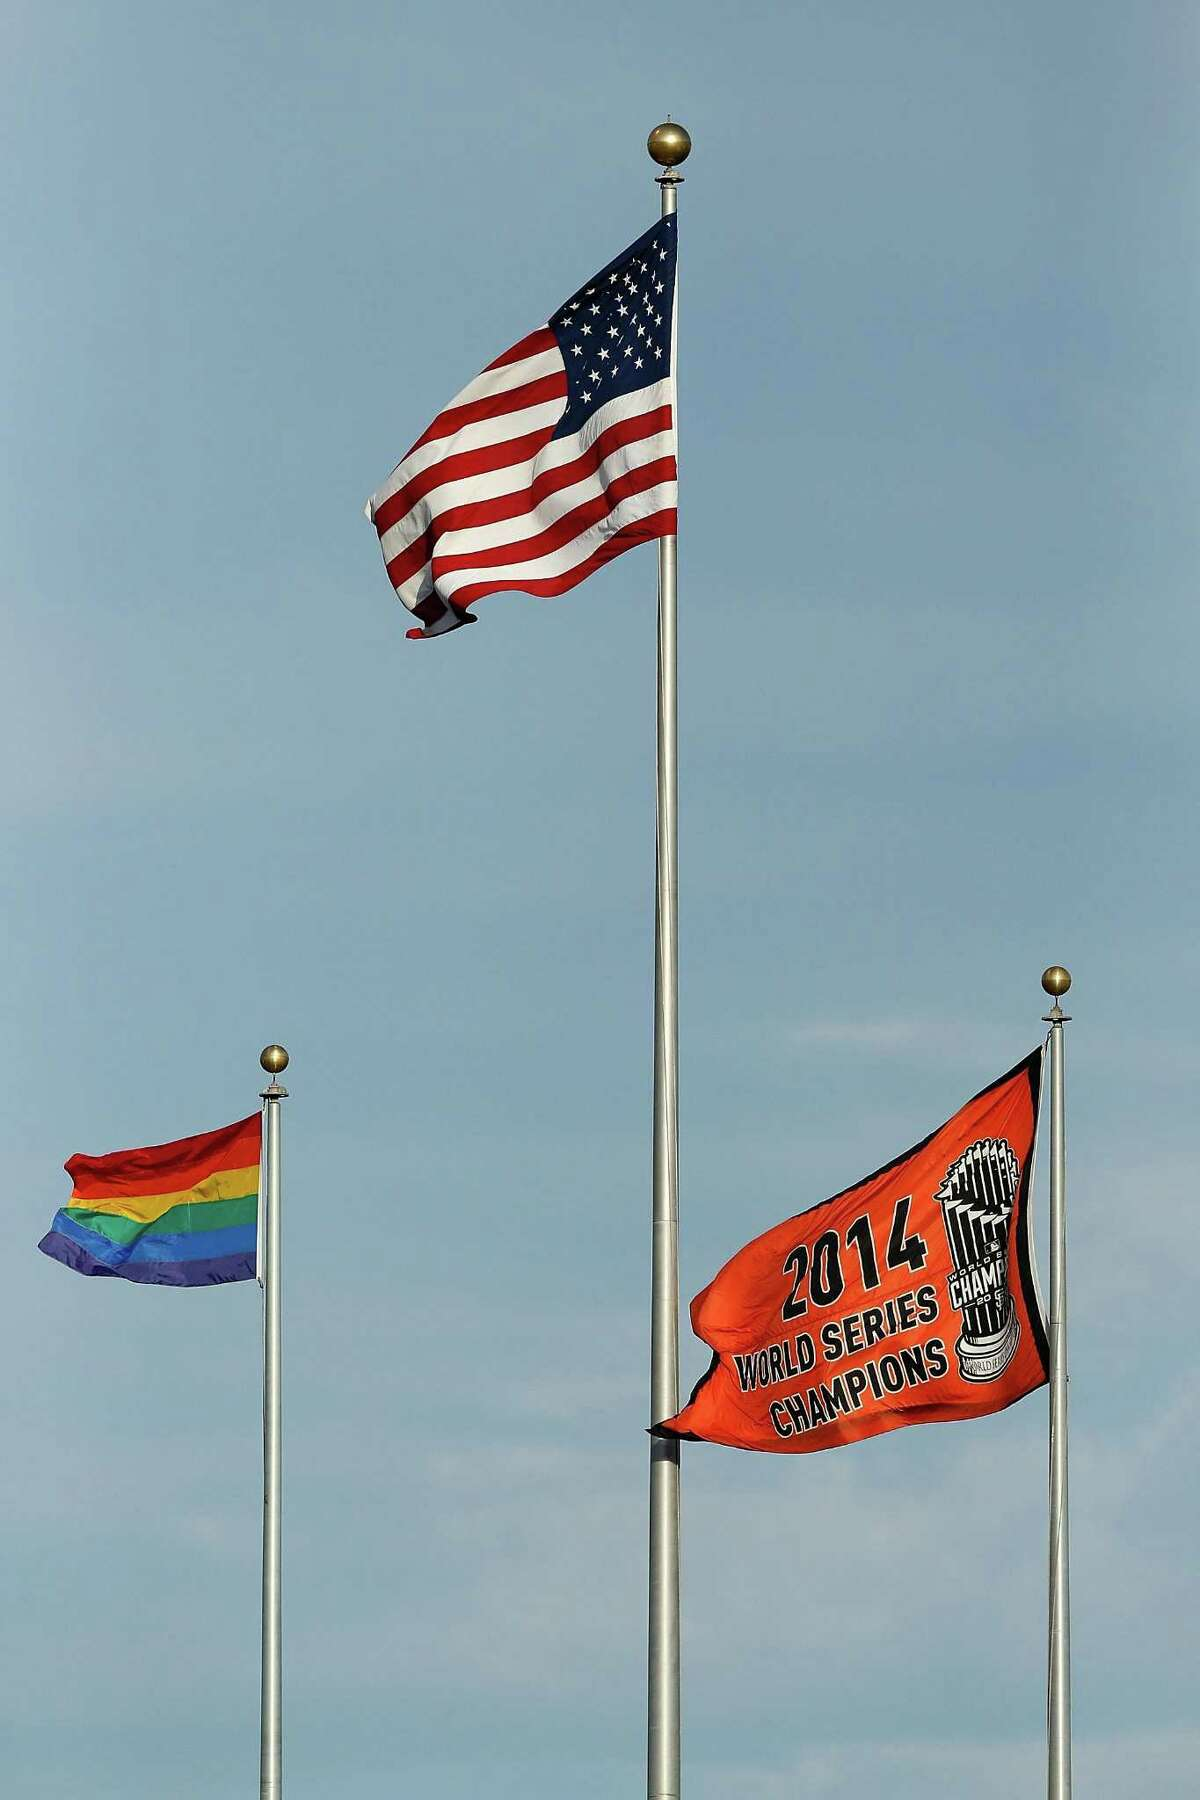 SAN FRANCISCO, CA - JUNE 26: A rainbow flag flies alongside the American flag and 2014 World Series Champions flag on LGBT Night before the game between the San Francisco Giants and the Colorado Rockies at AT&T Park on June 26, 2015 in San Francisco, California. (Photo by Lachlan Cunningham/Getty Images)